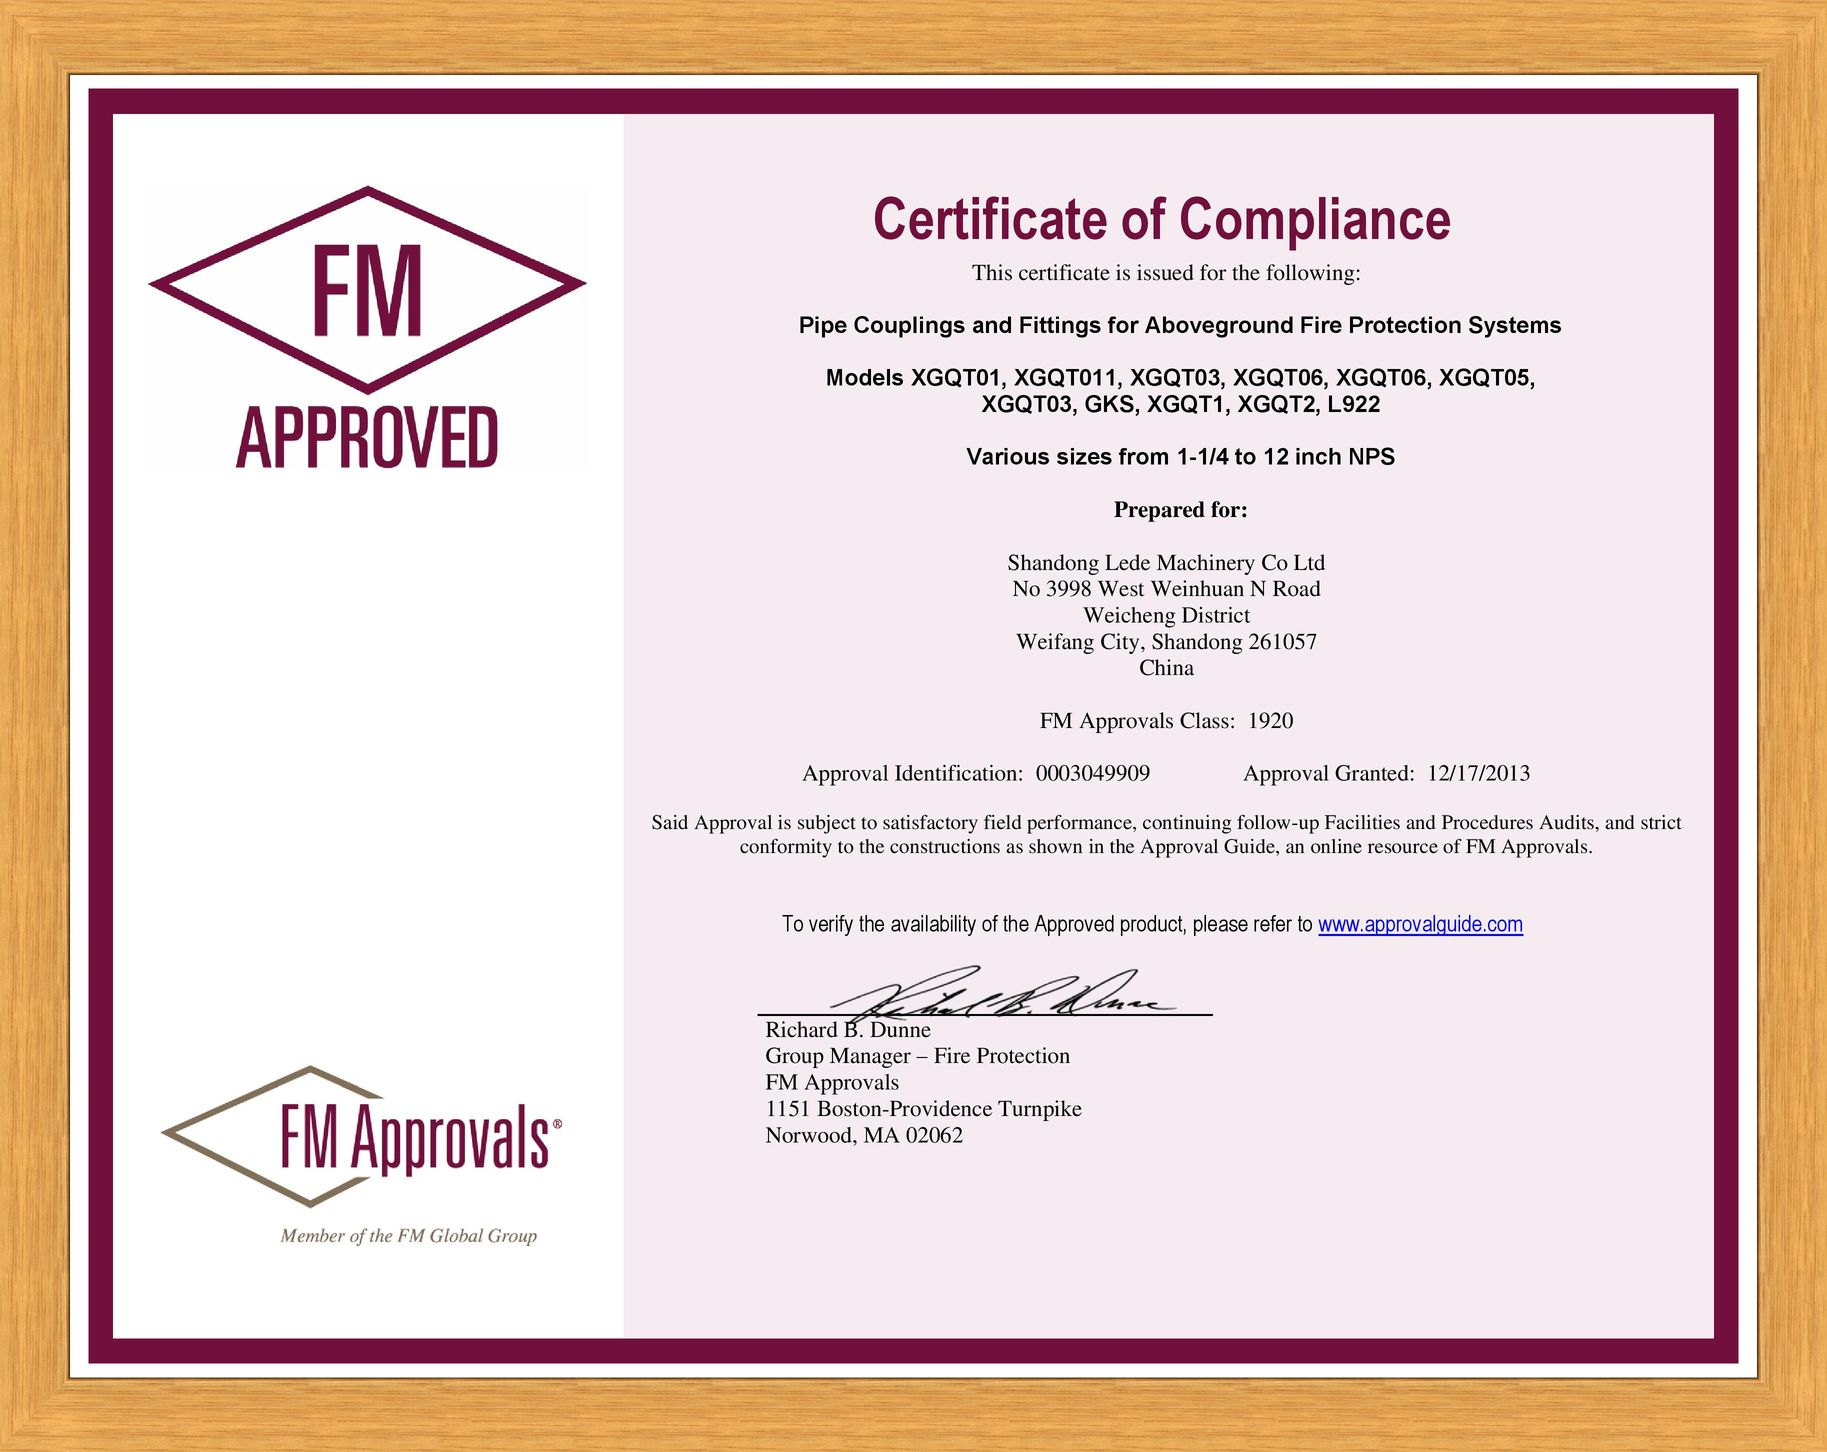 FM Approved sertificate (Pipe Couplings and Fittings), 2013